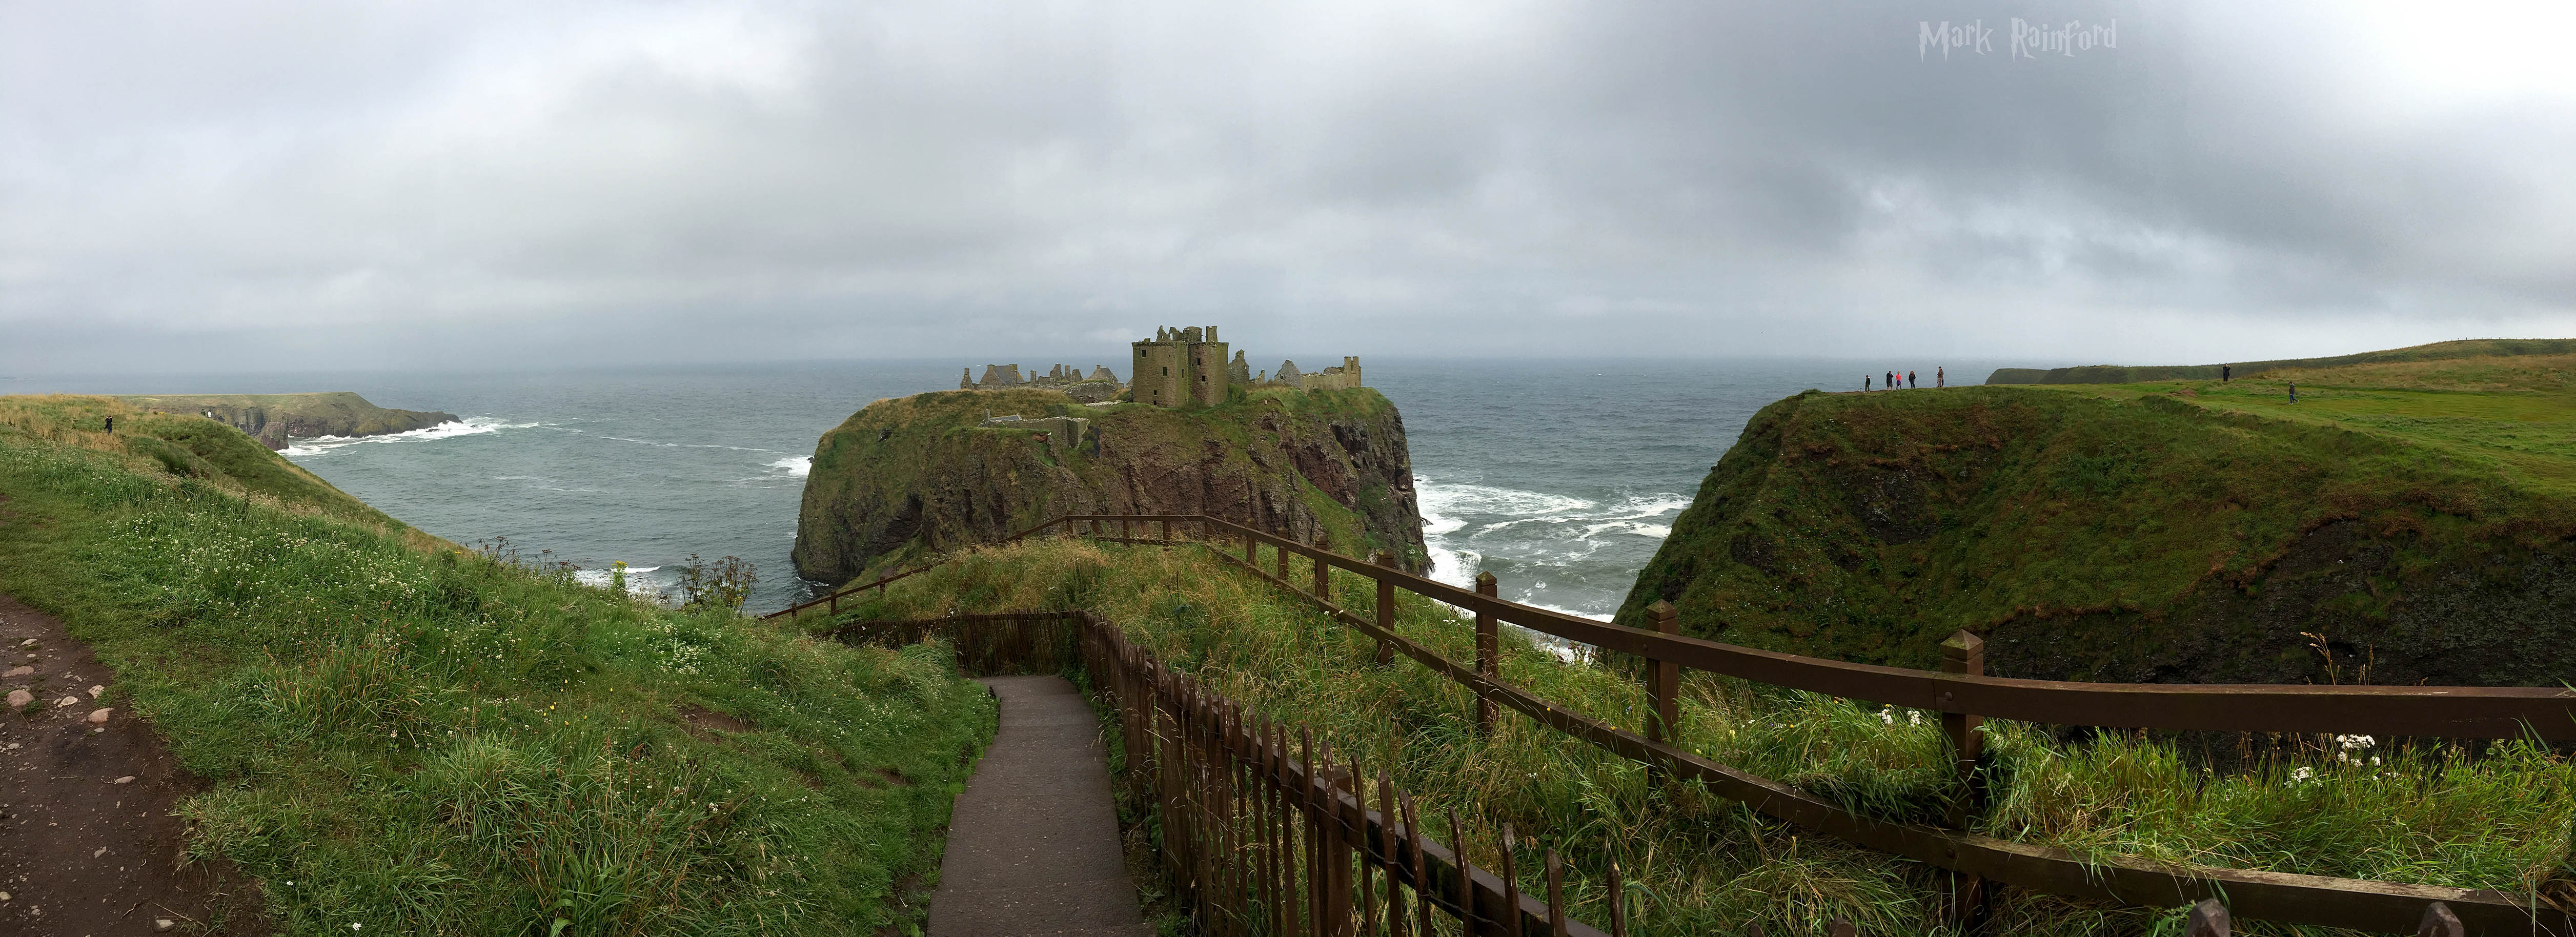 Panoramic shot of Dunnottar Castle